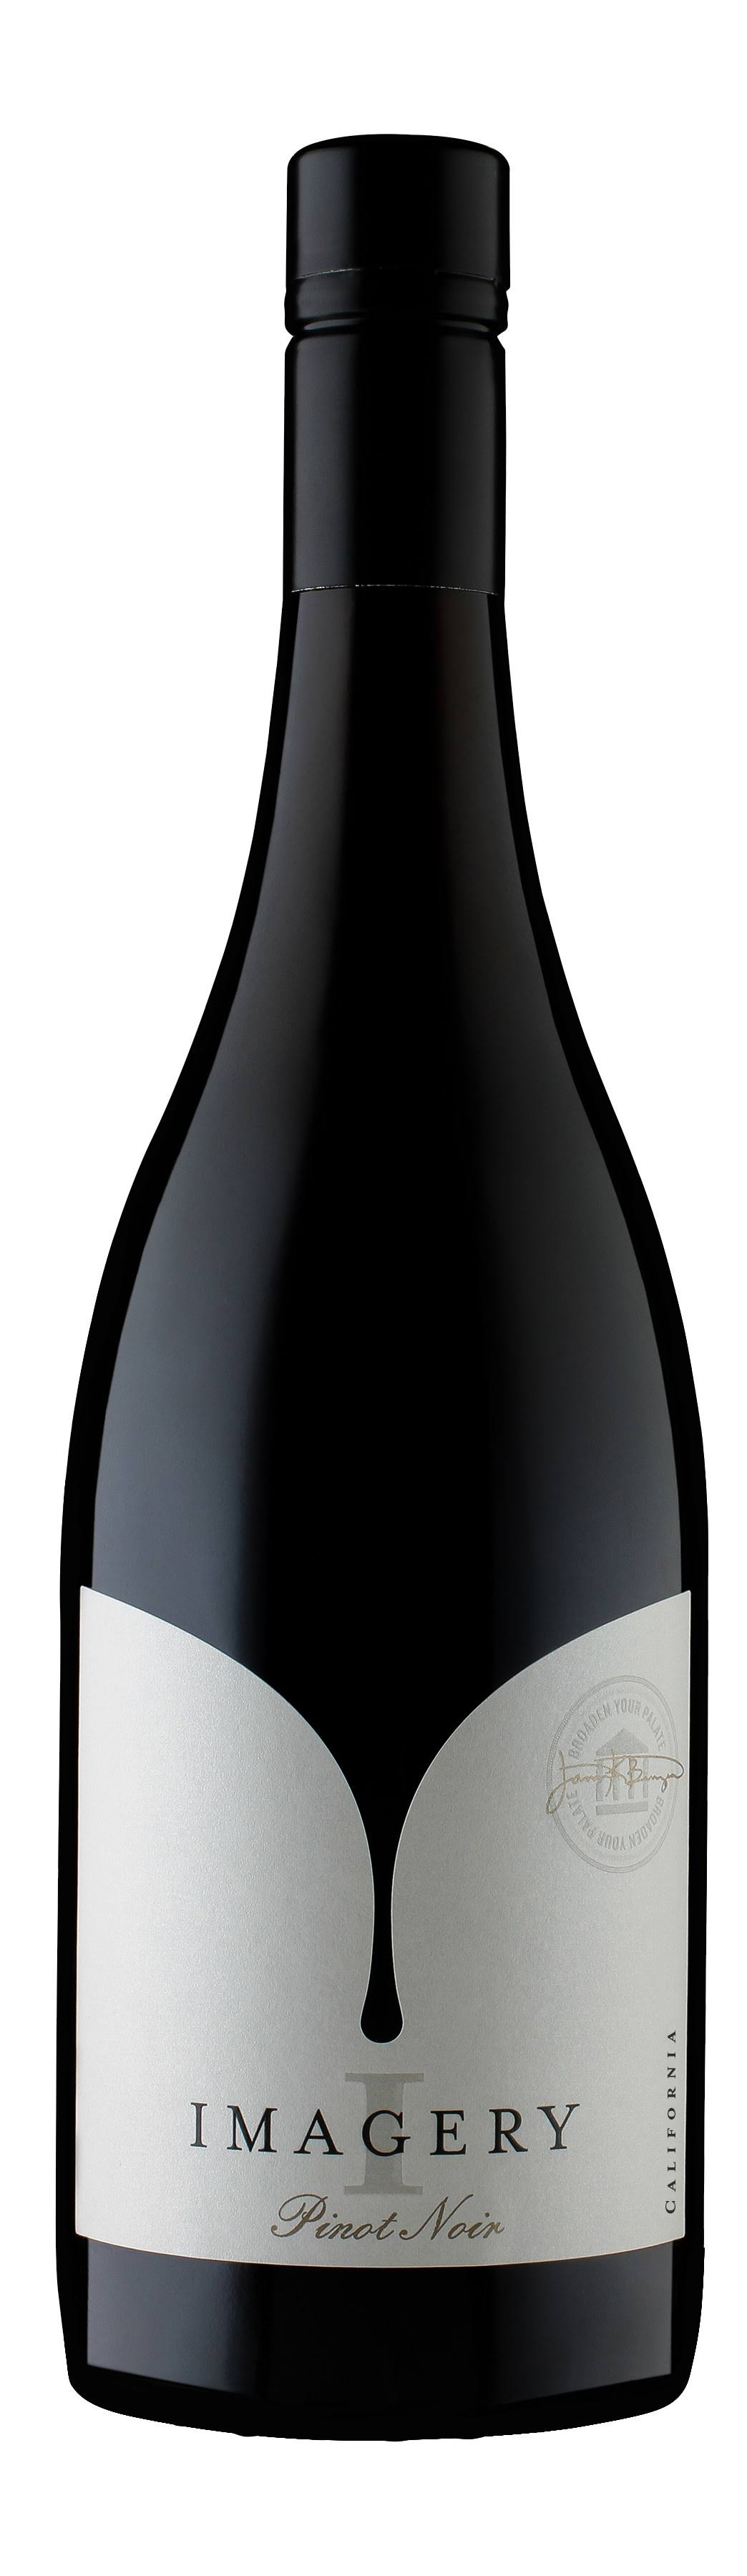 Imagery Pinot Noir (750 ml)